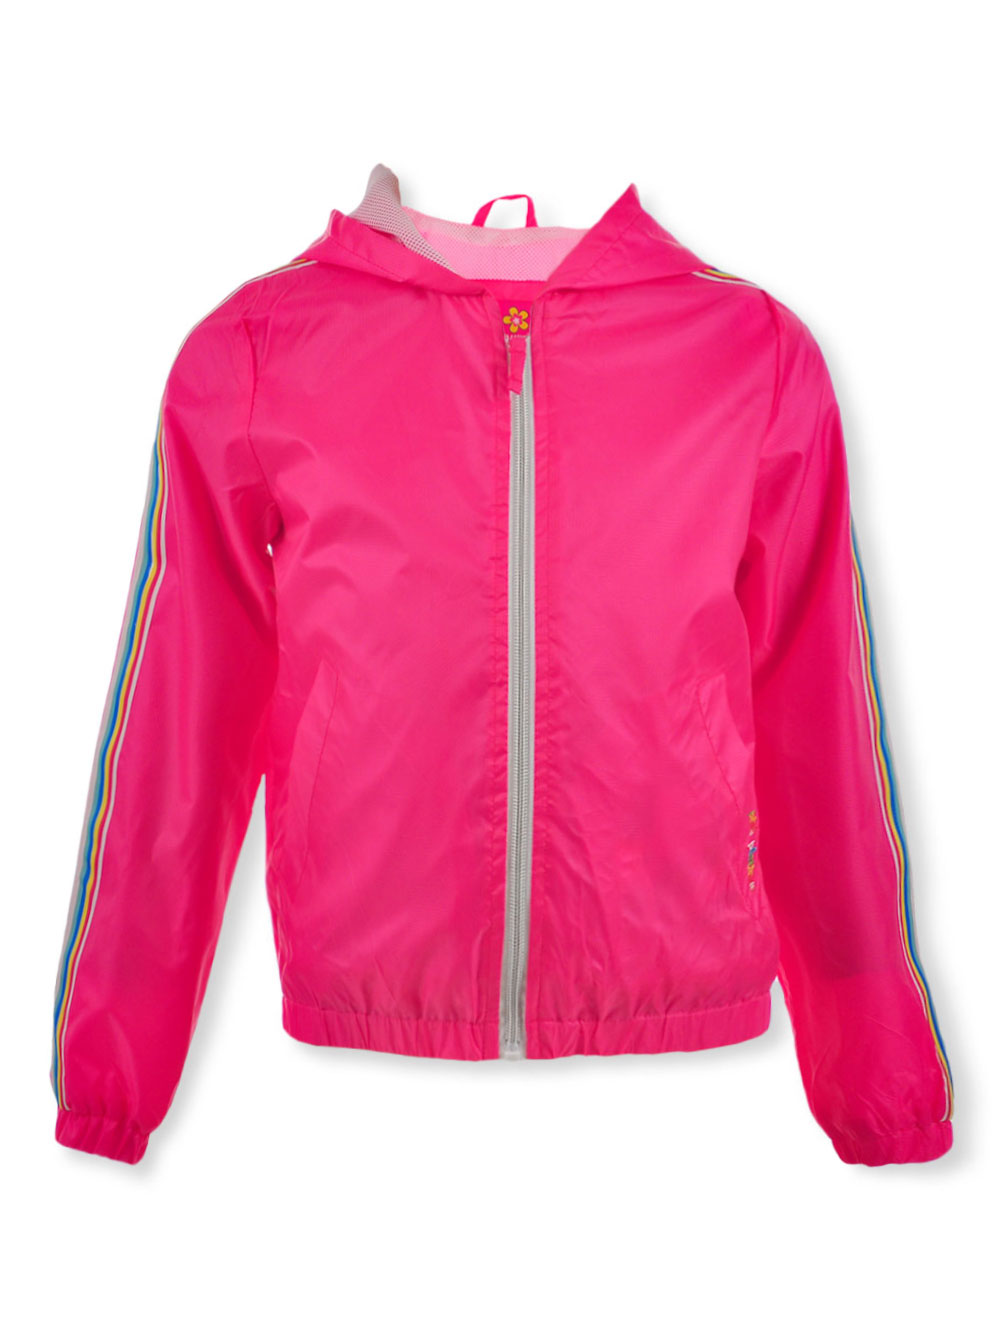 Girls Pink Jackets